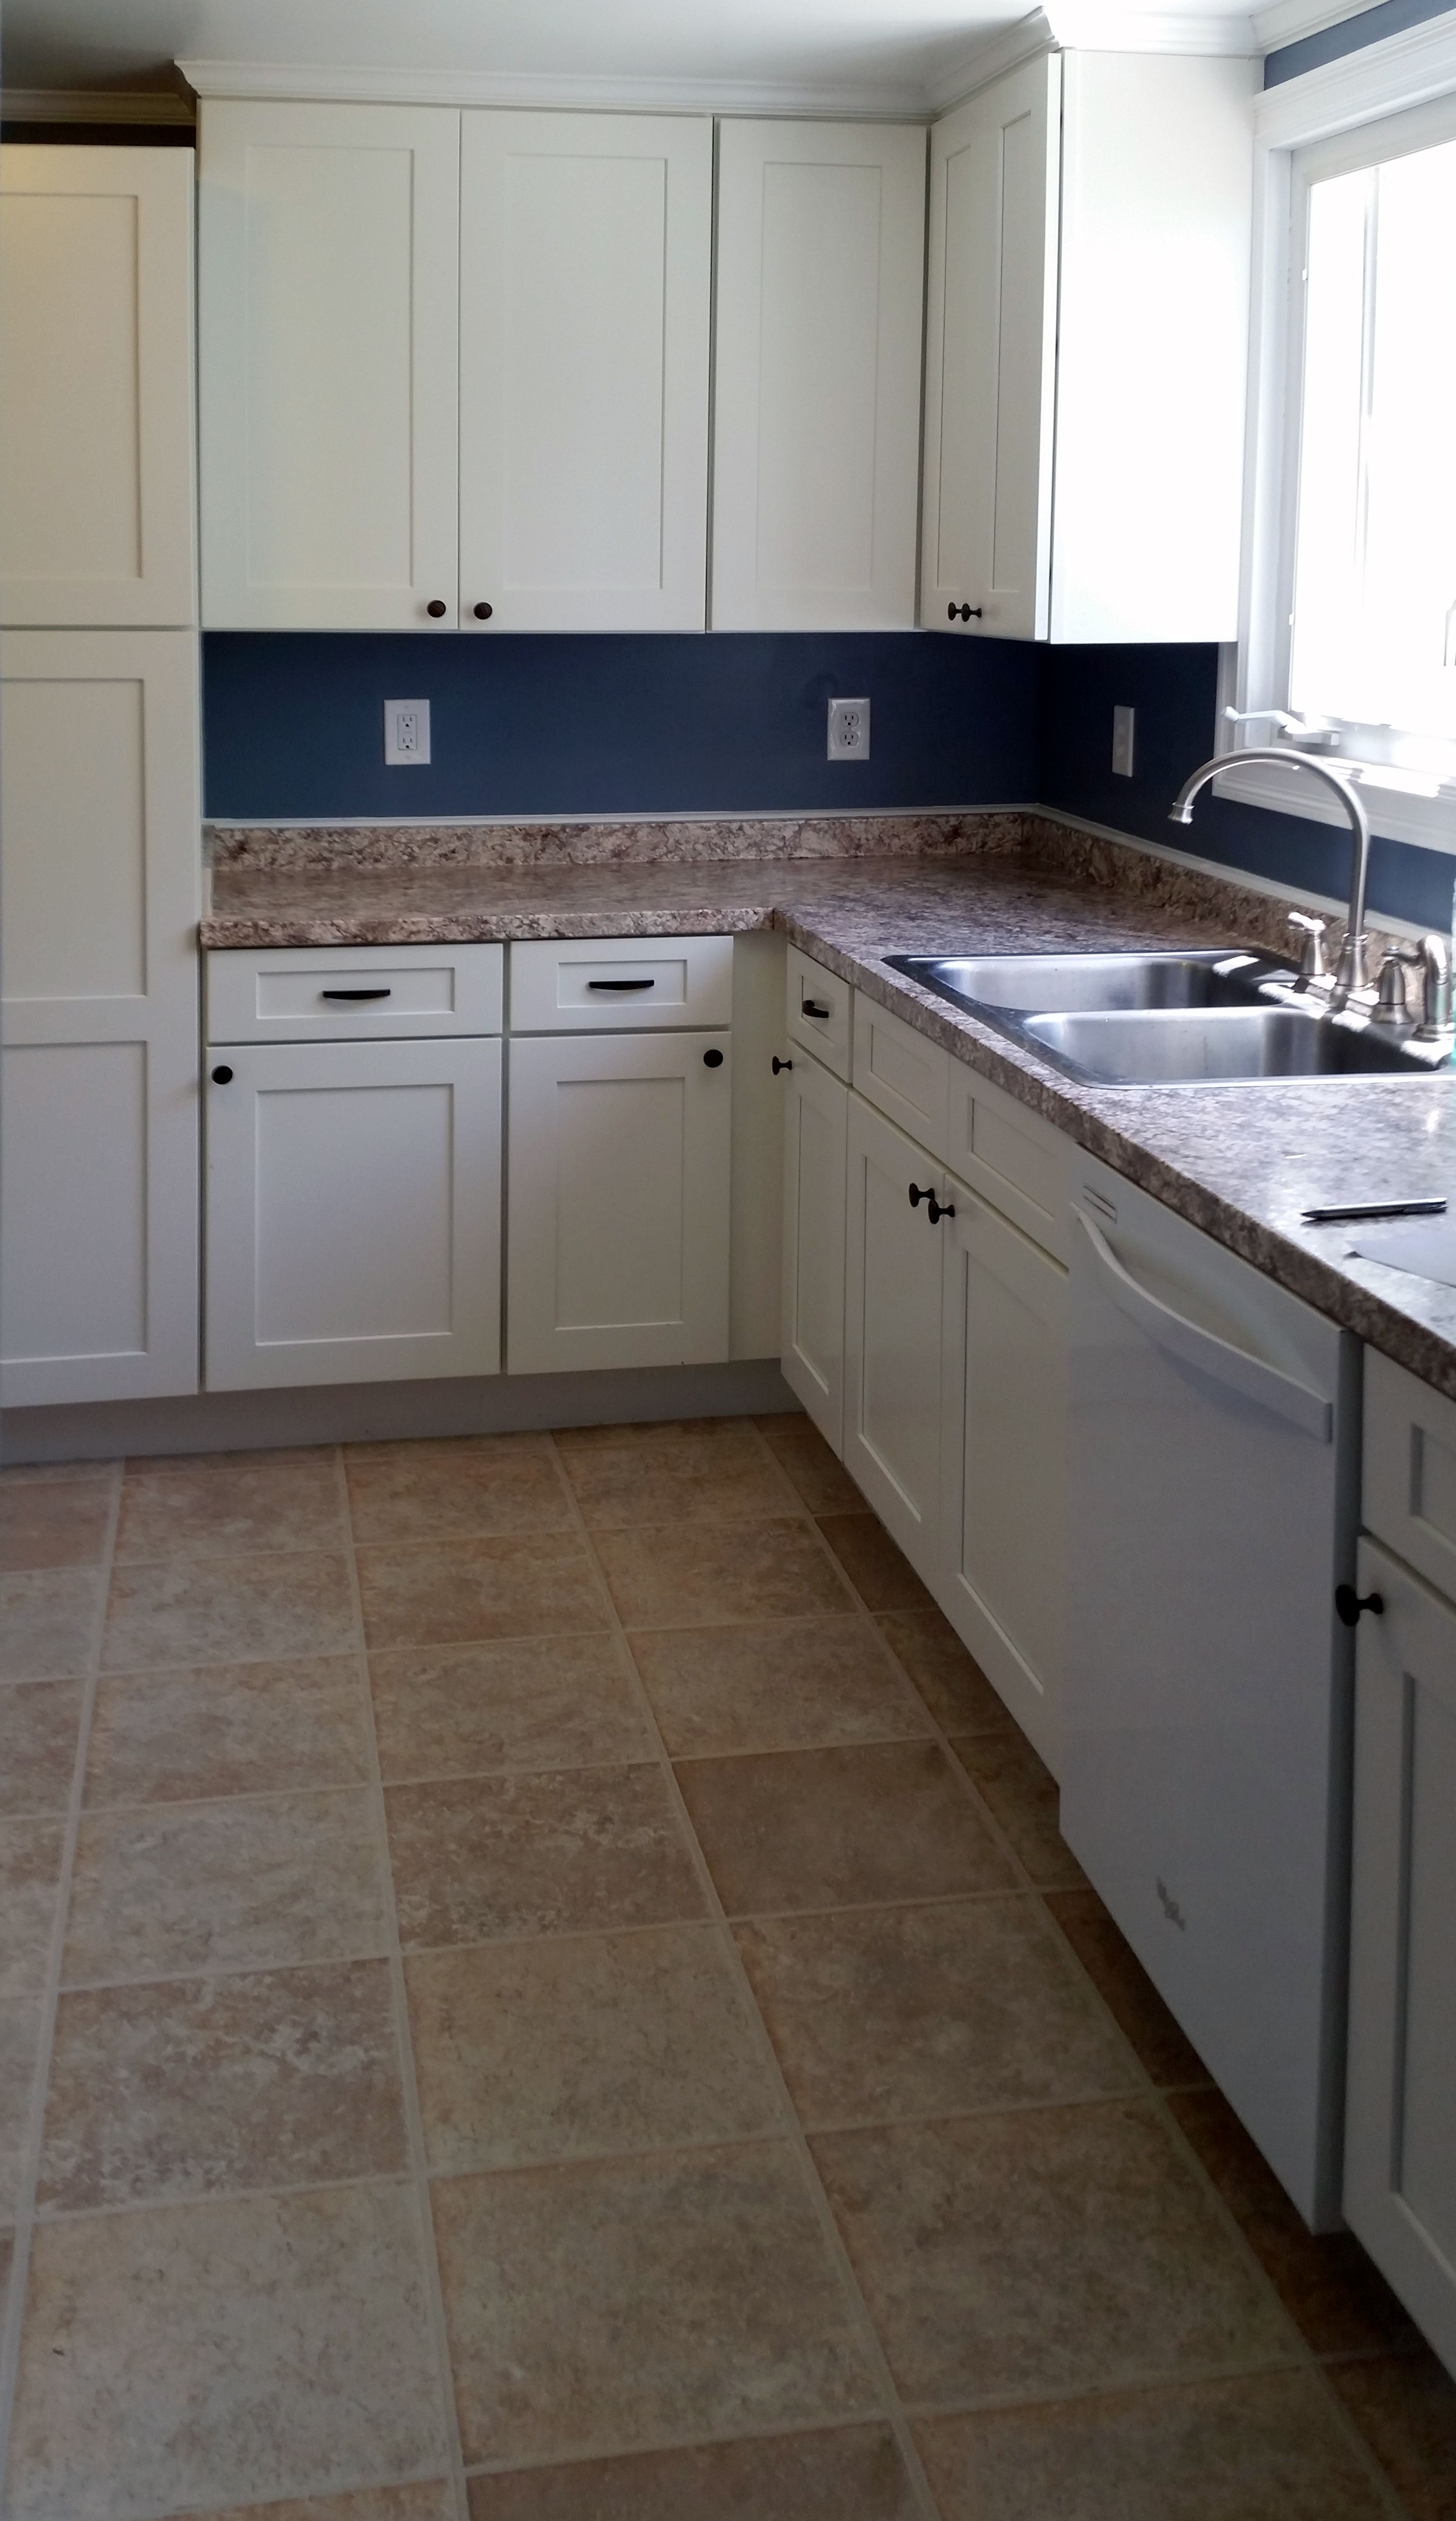 At Bargain Outlet, Kitchen Cabinets, Floors, Windows, And Doors Are Set To  A Guaranteed Lowest Price.